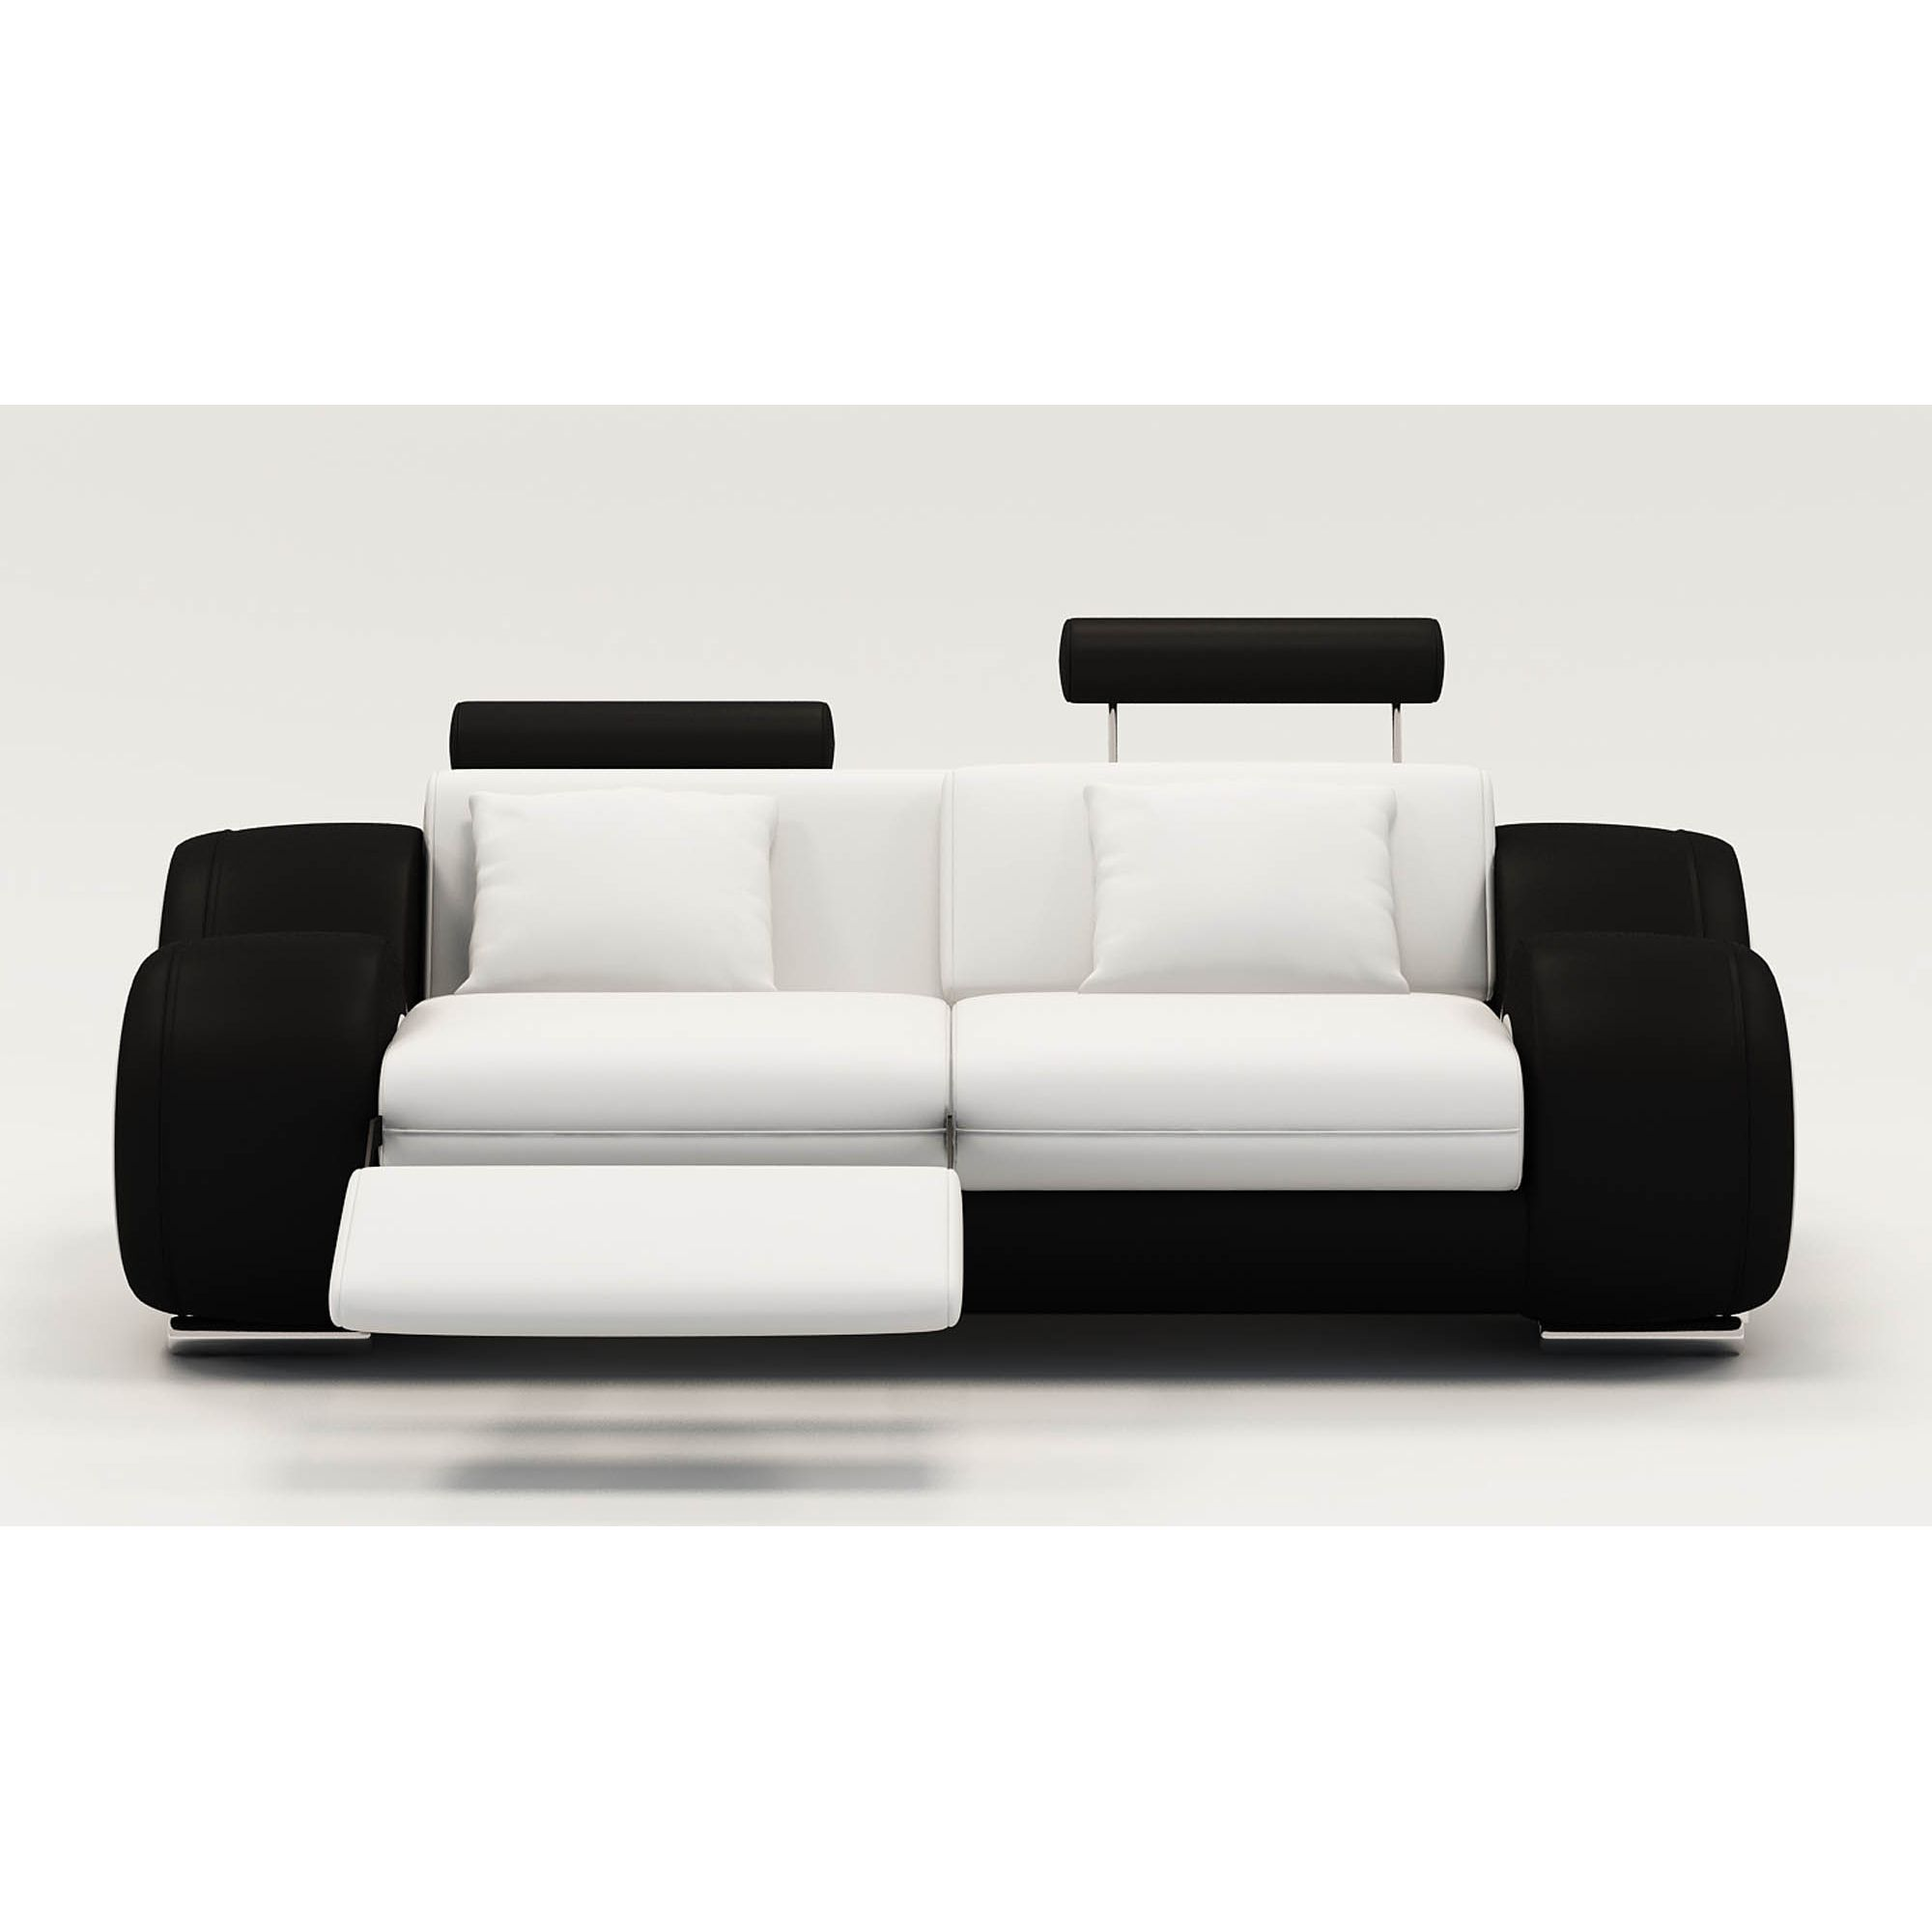 Deco in paris canape 2 places design relax oslo en cuir for Canape noir et blanc design